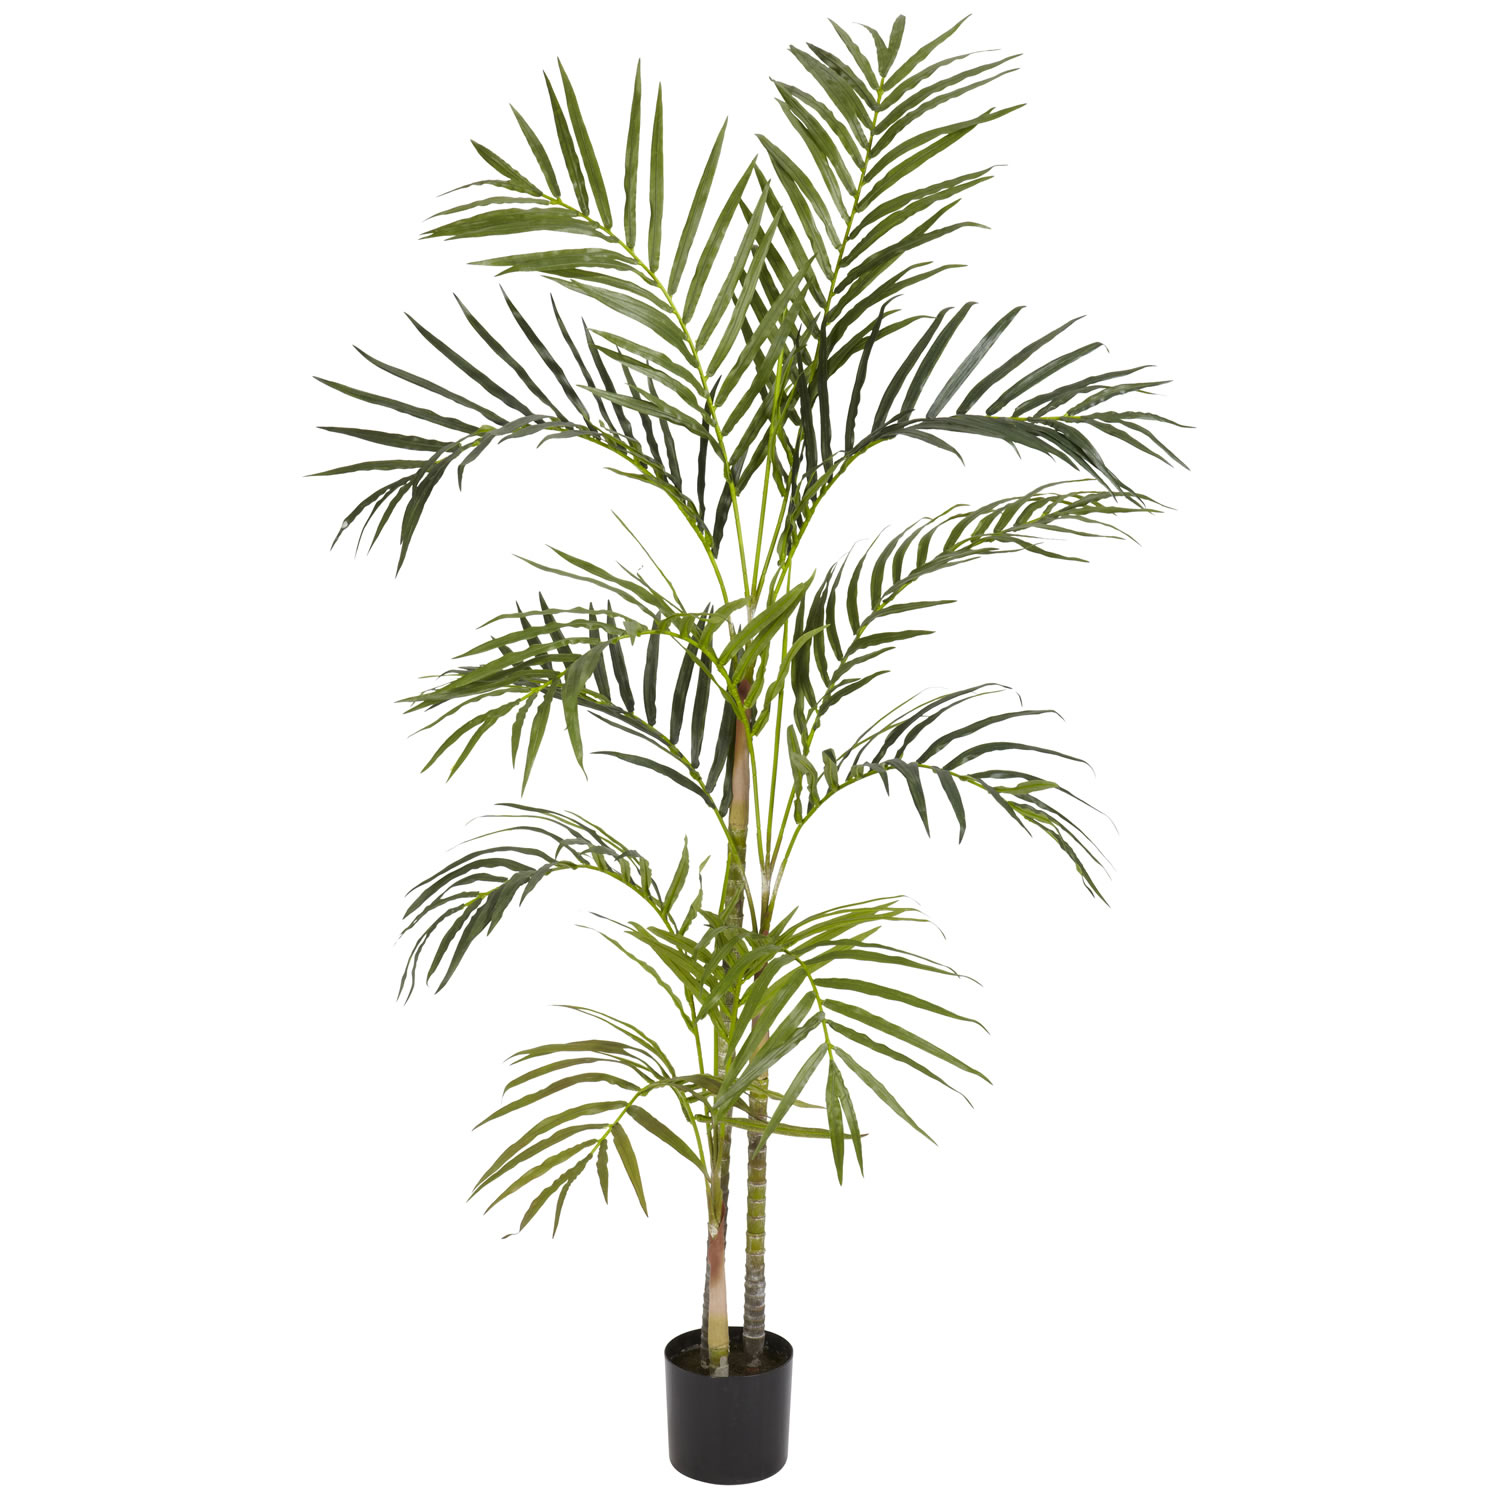 4 foot areca palm tree potted 5314 for Pictures of areca palm plants